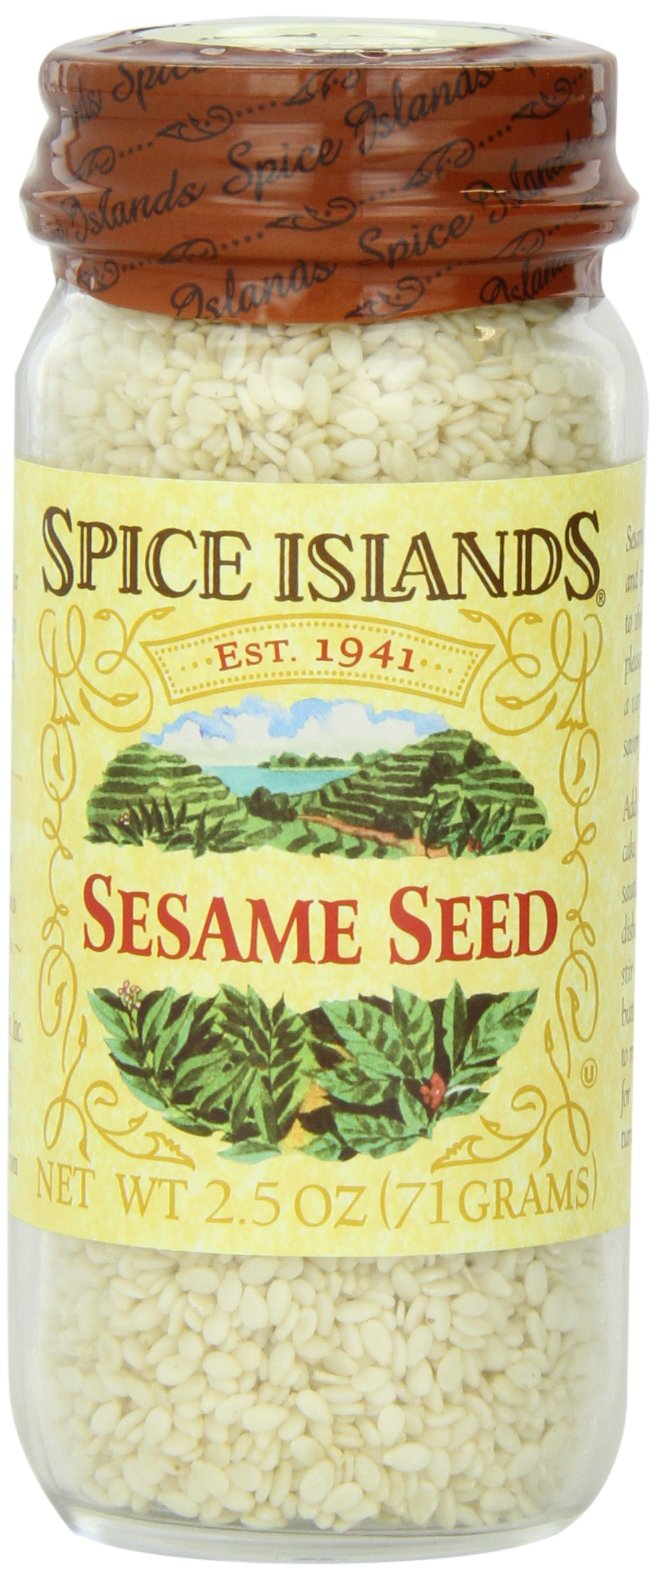 Spice Islands Sesame Seed, Whole White, 2.5-Ounce (Pack of 3)